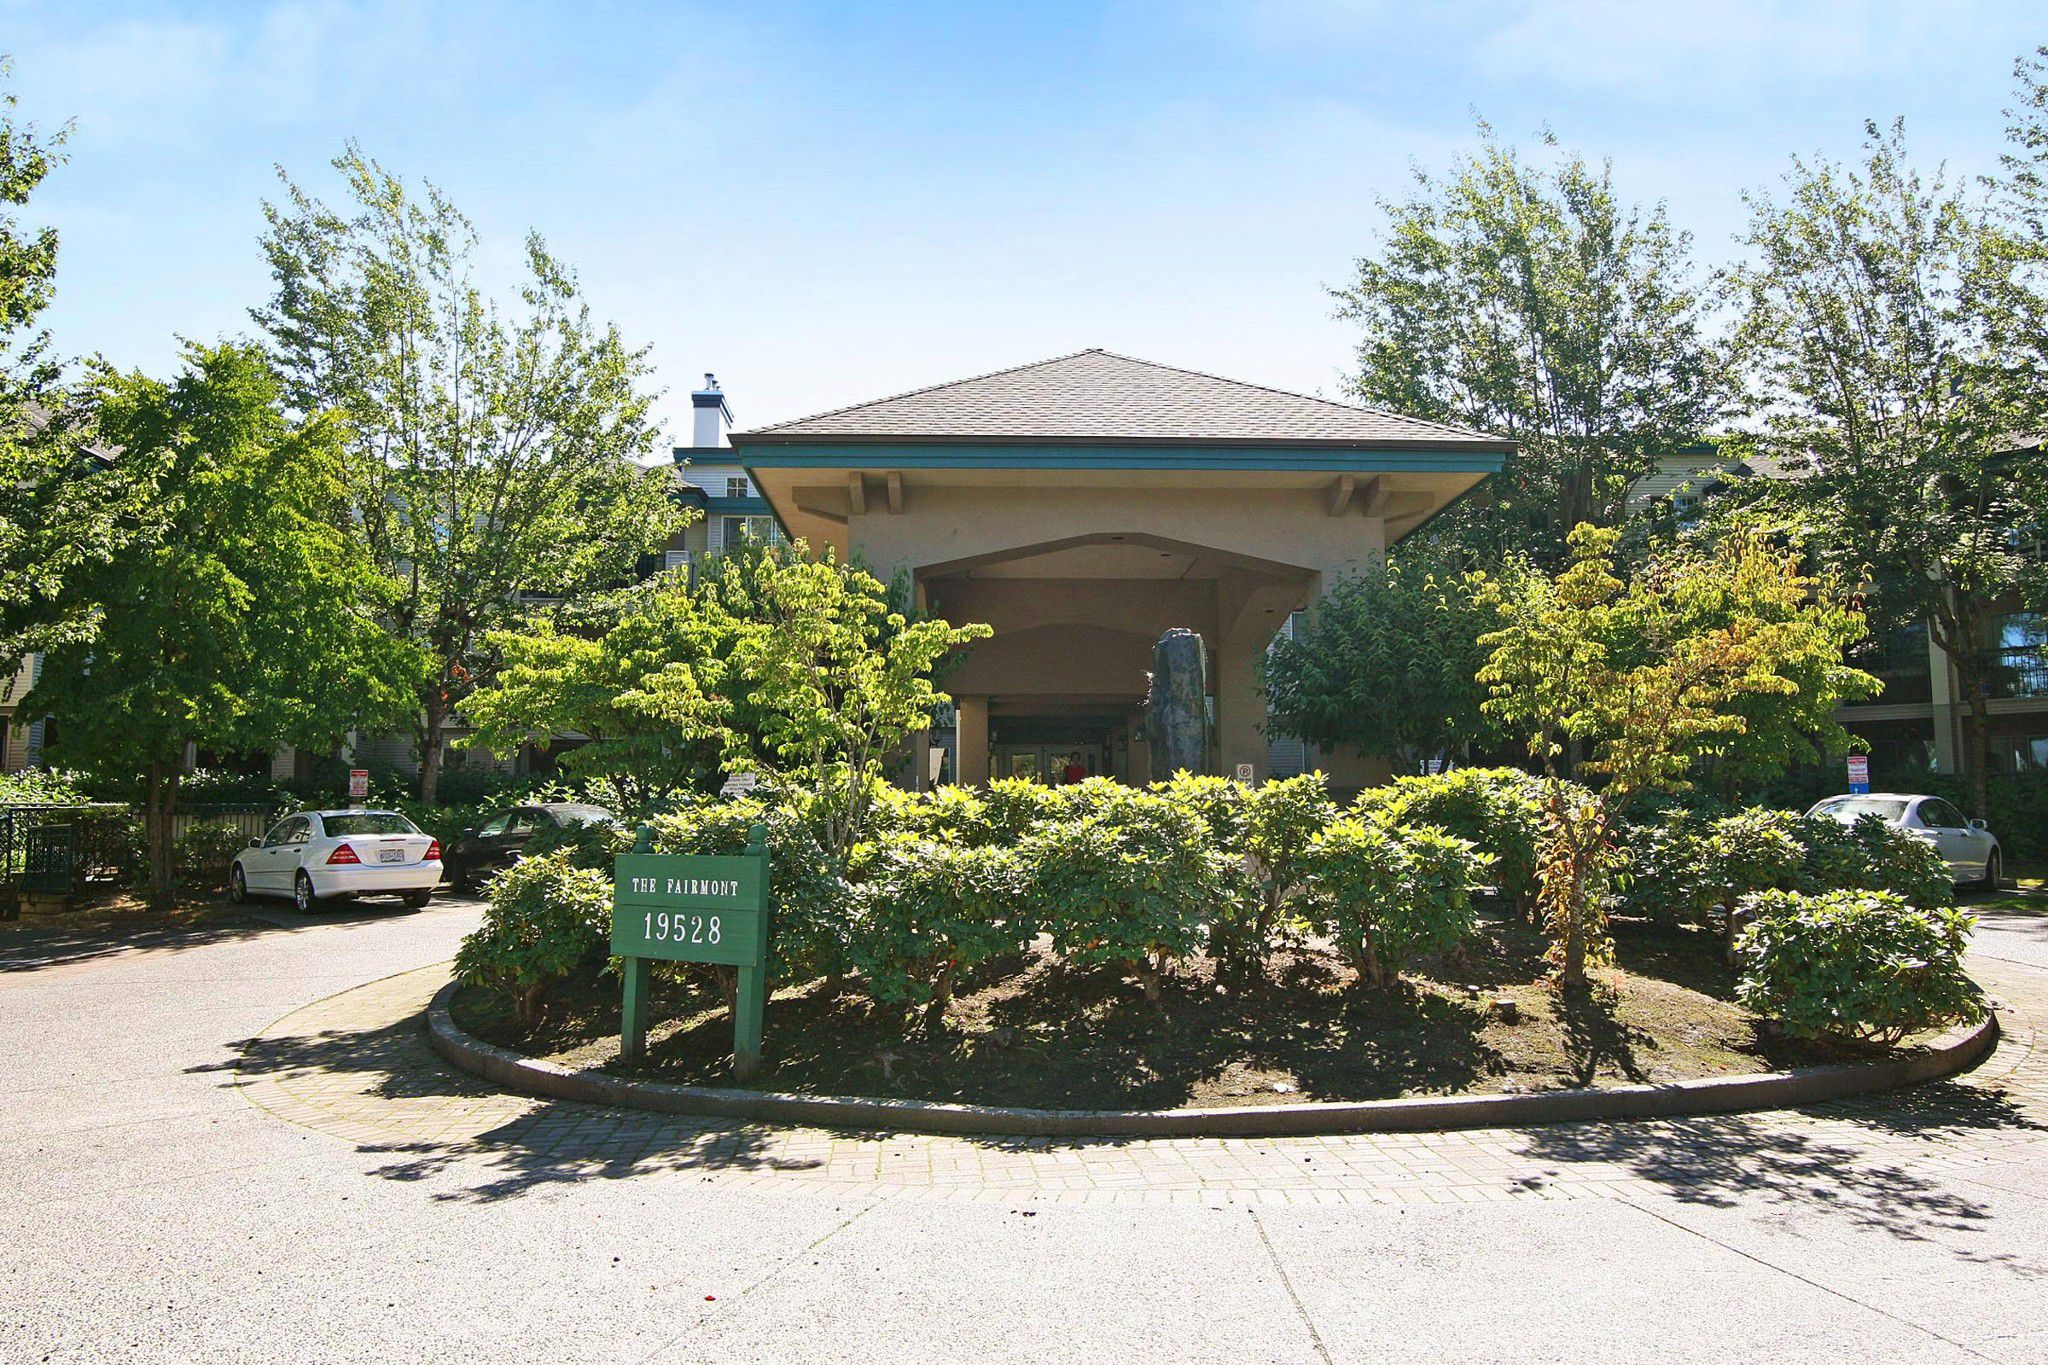 """Main Photo: 306 19528 FRASER Highway in Surrey: Cloverdale BC Condo for sale in """"FAIRMONT"""" (Cloverdale)  : MLS®# R2219963"""